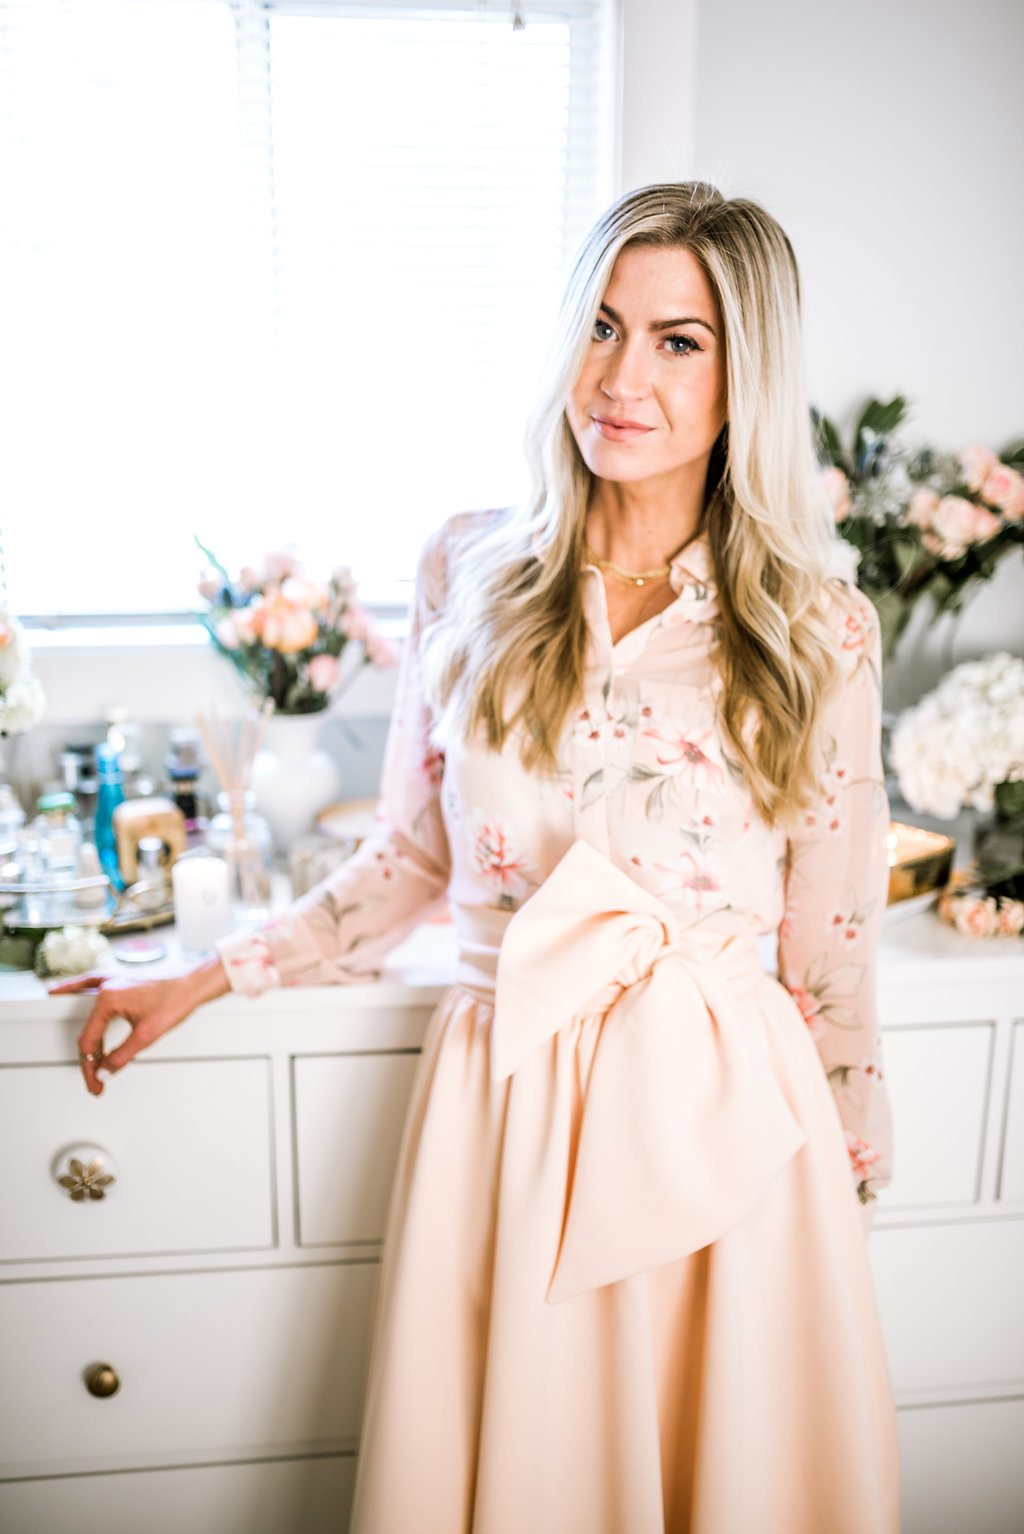 Blush bow skirt + floral top